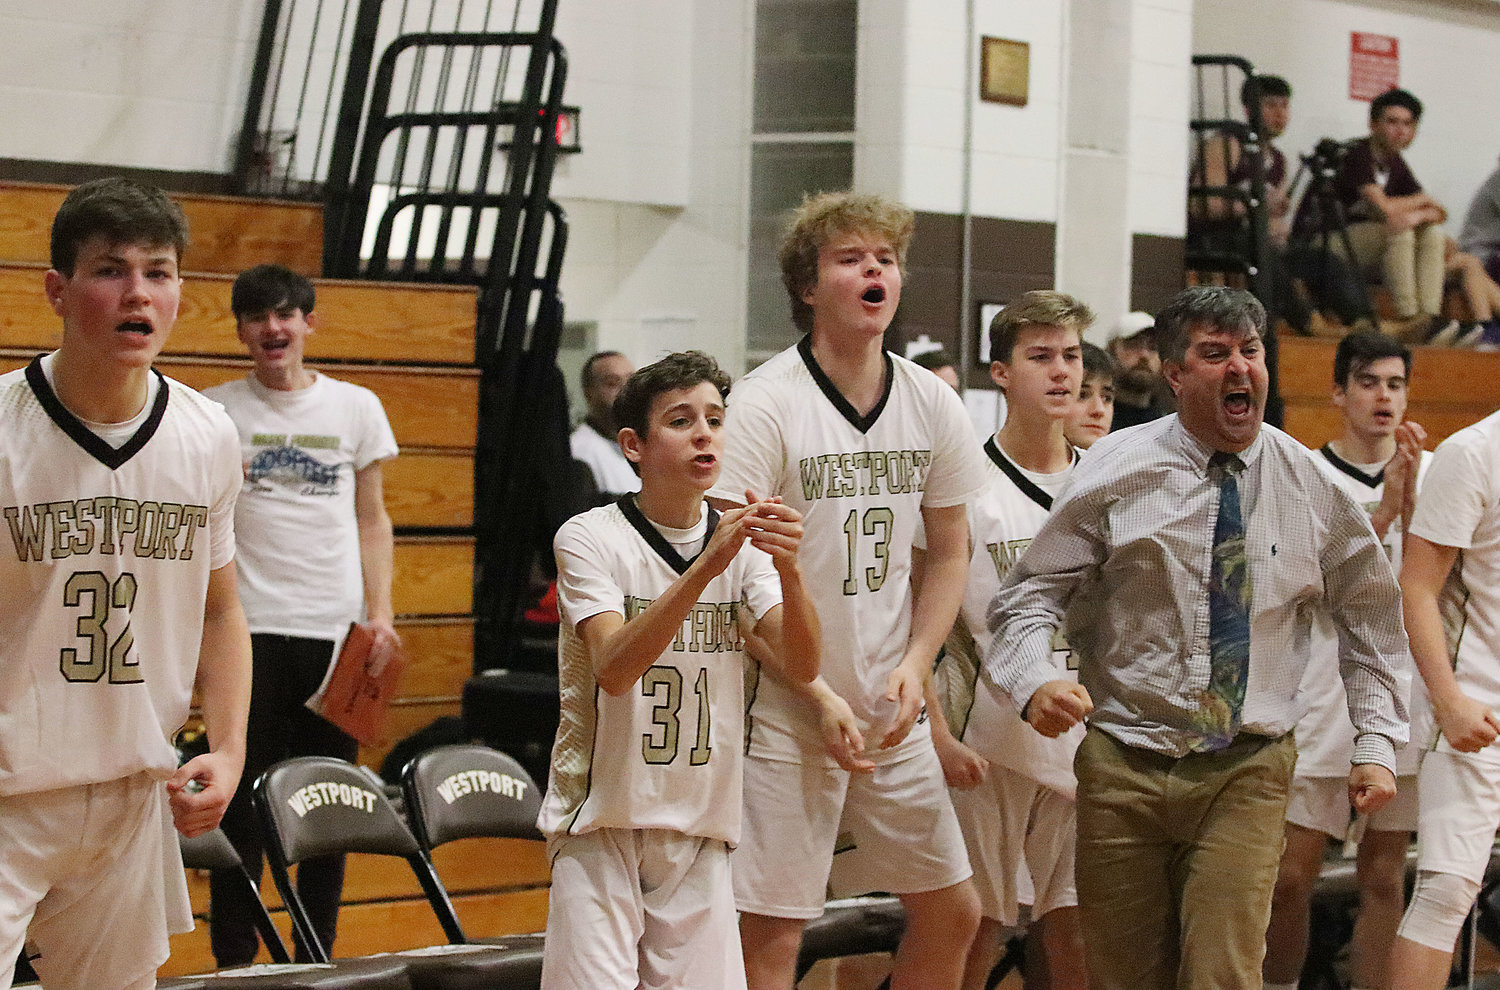 The Westport bench and coach Boudria (right) erupt after Aidan Viveiros sinks a three pointer in the second half.